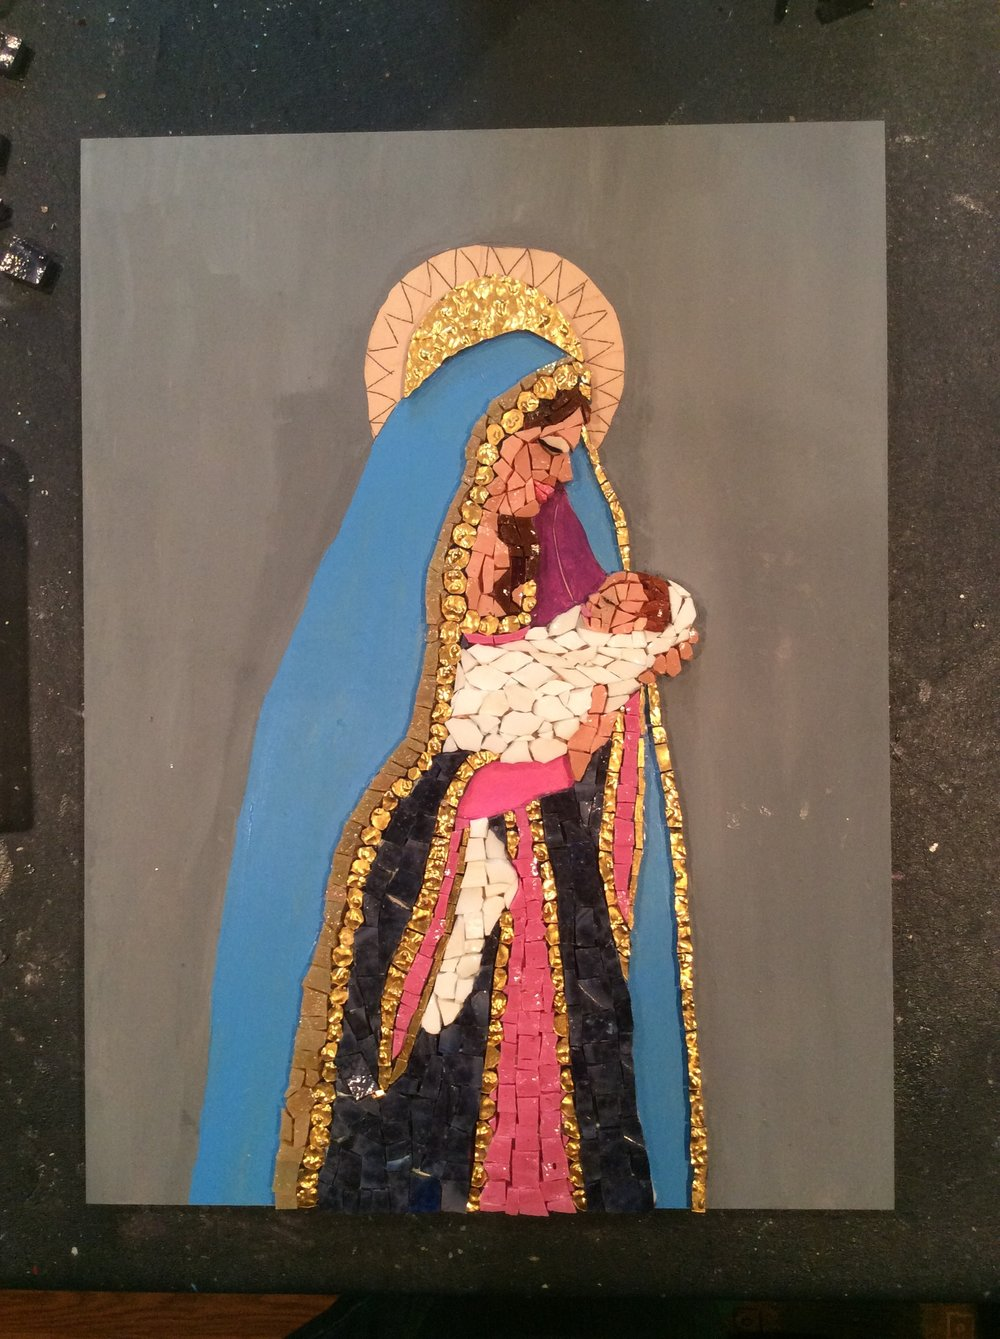 Another 5 hours of work. I have just enough purple smalti to finish the Madonna's dress.